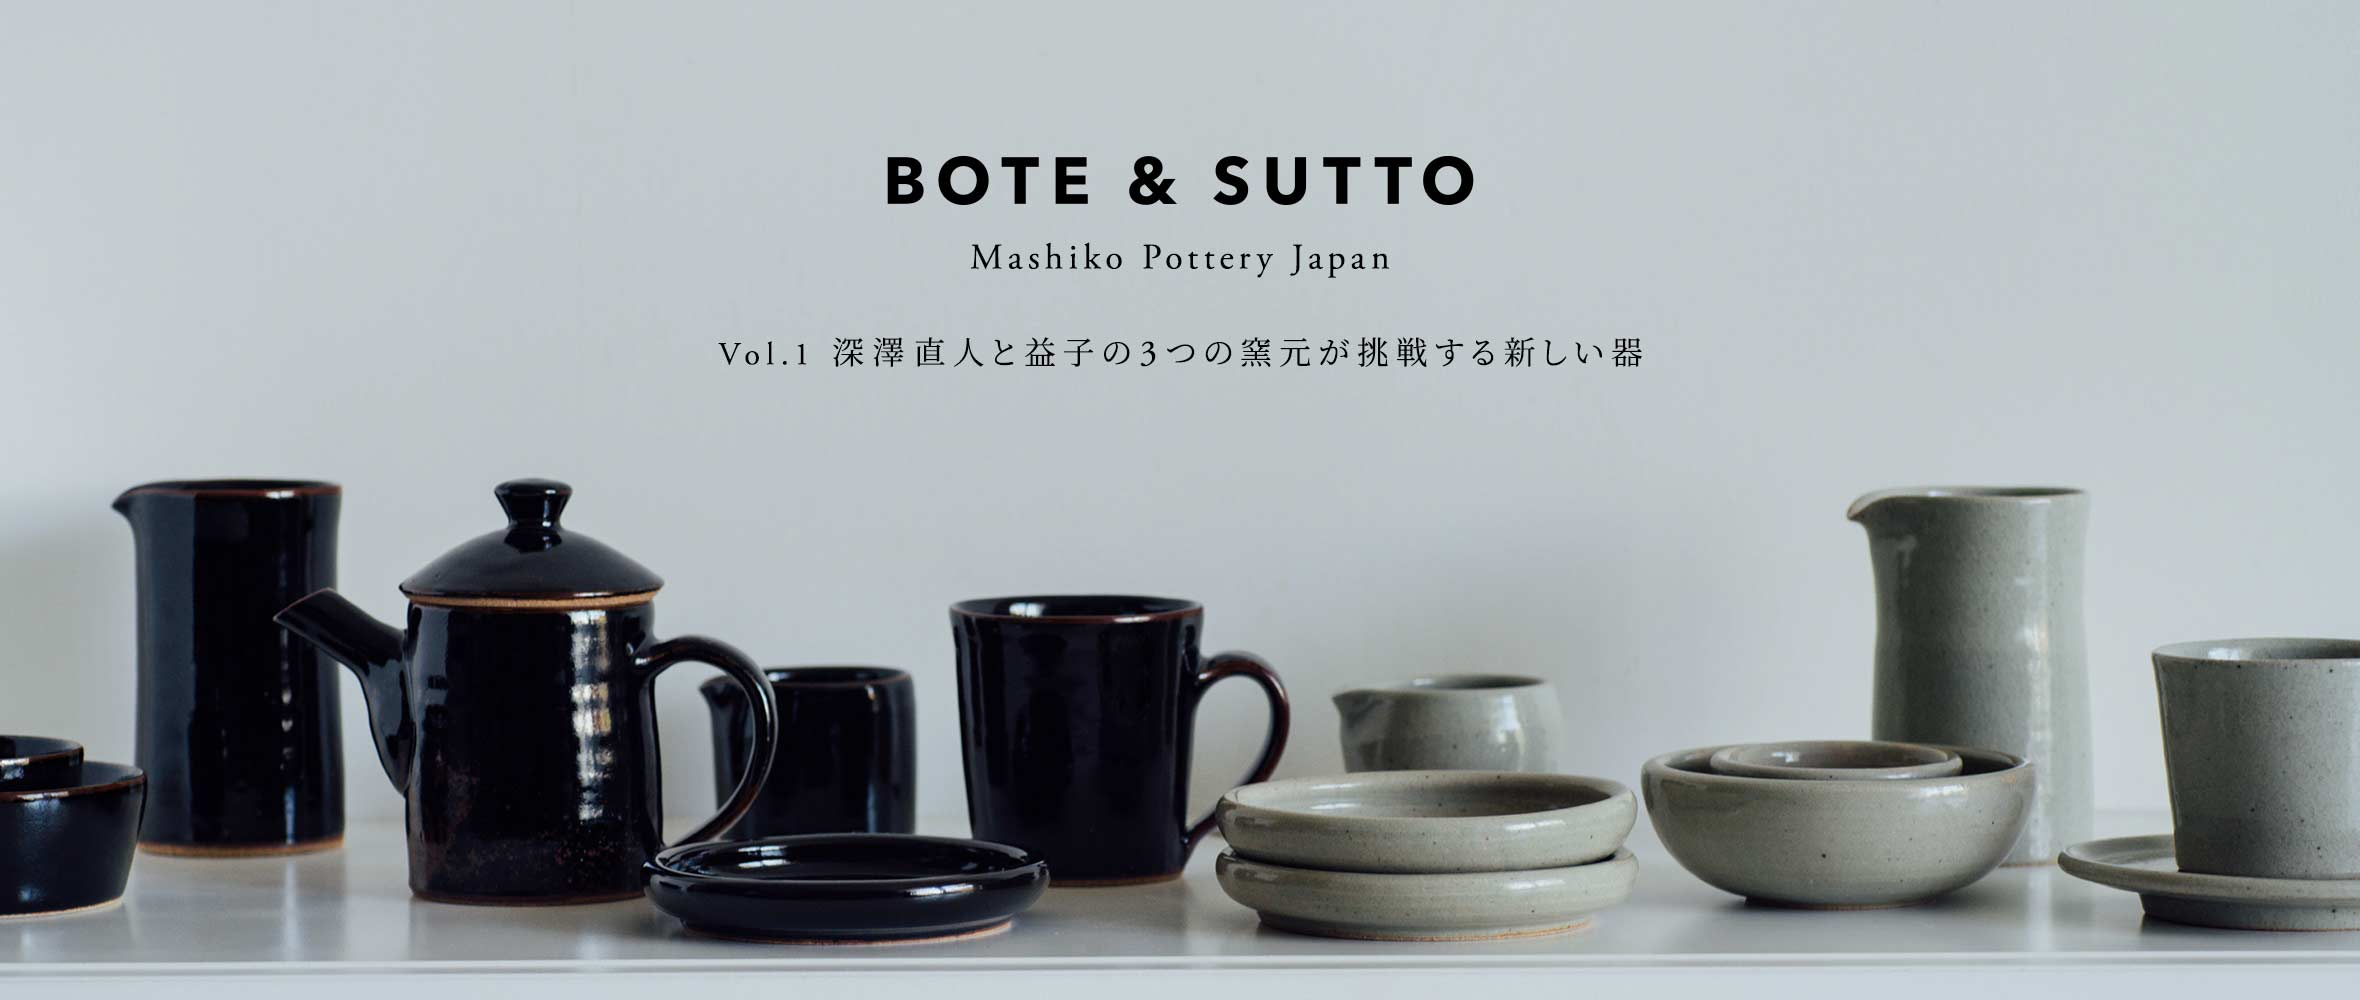 BOTE & SUTTO Vol.1 深澤直人と益子の3つの窯元が挑戦する新しい器